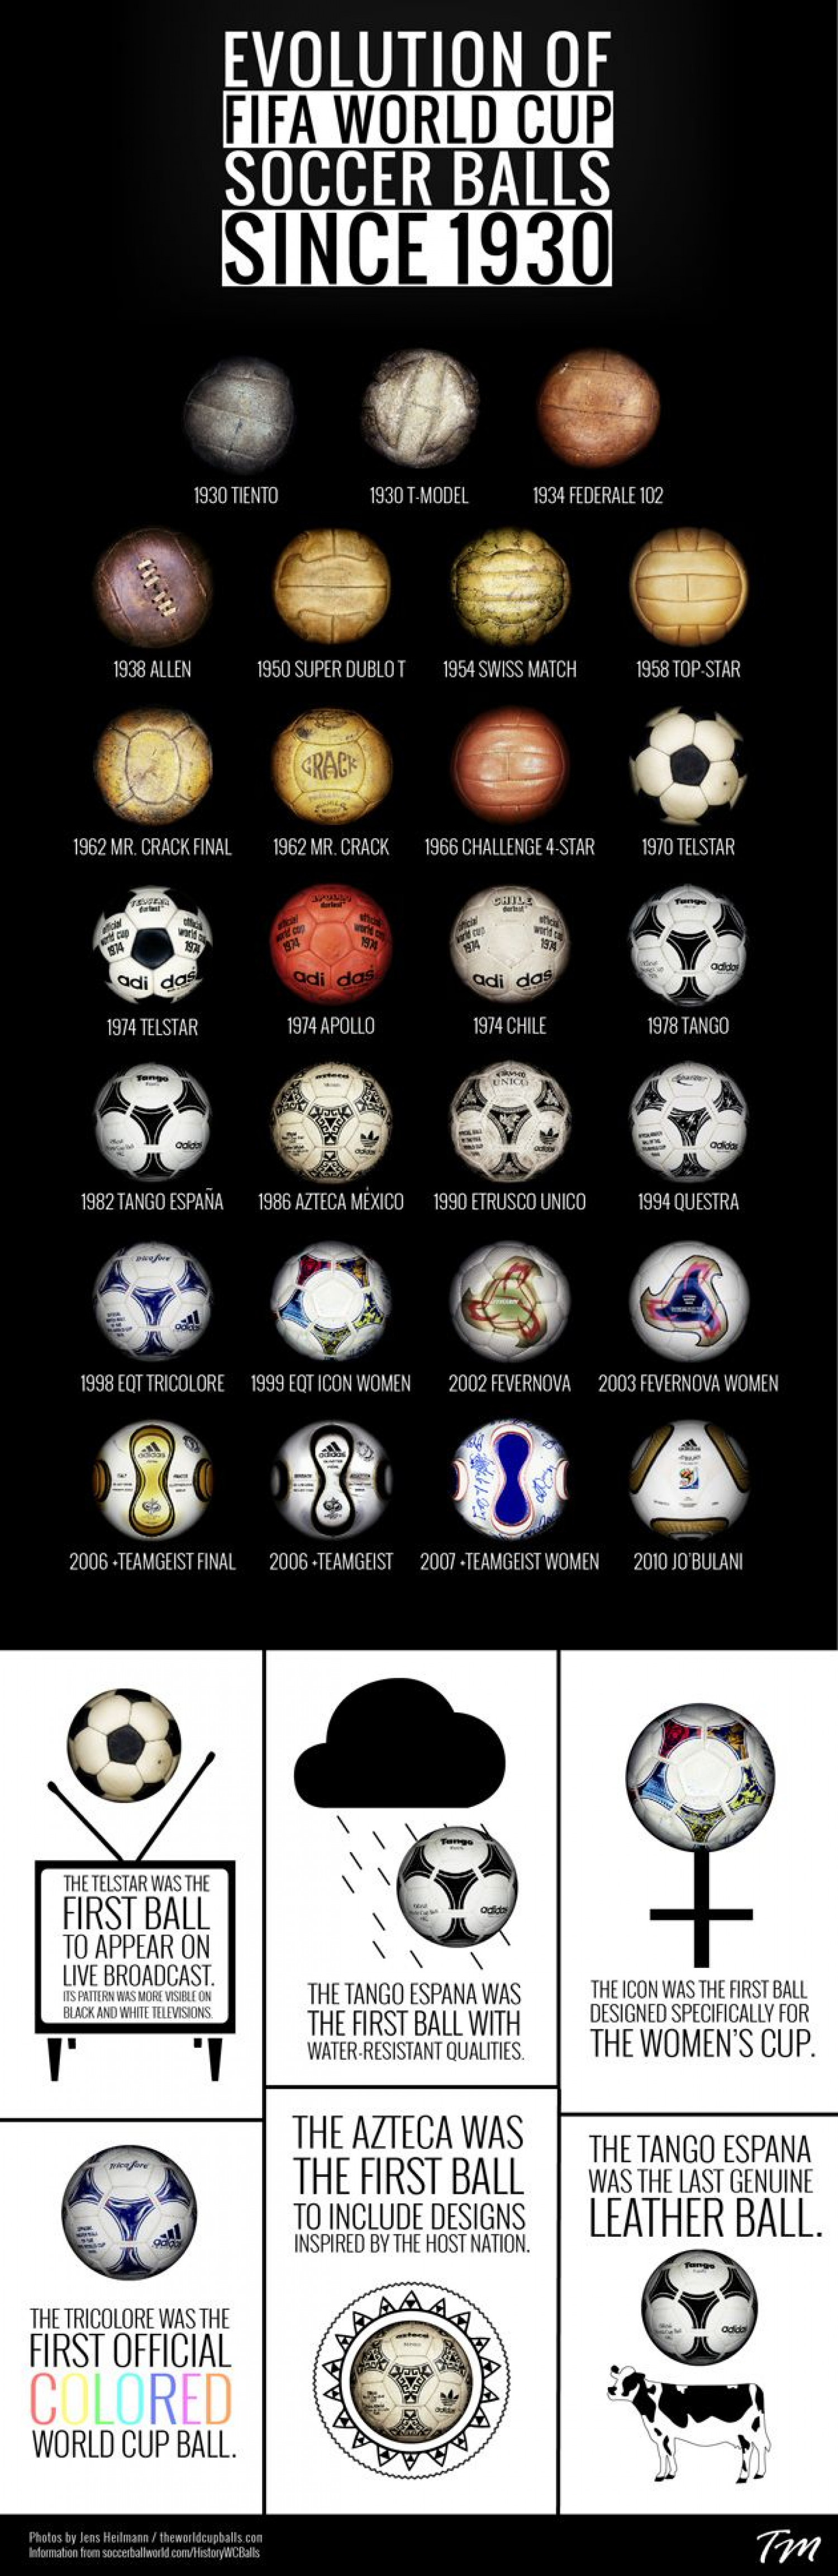 Evolution of FIFA World Cup Soccer Balls- Since 1930 Infographic